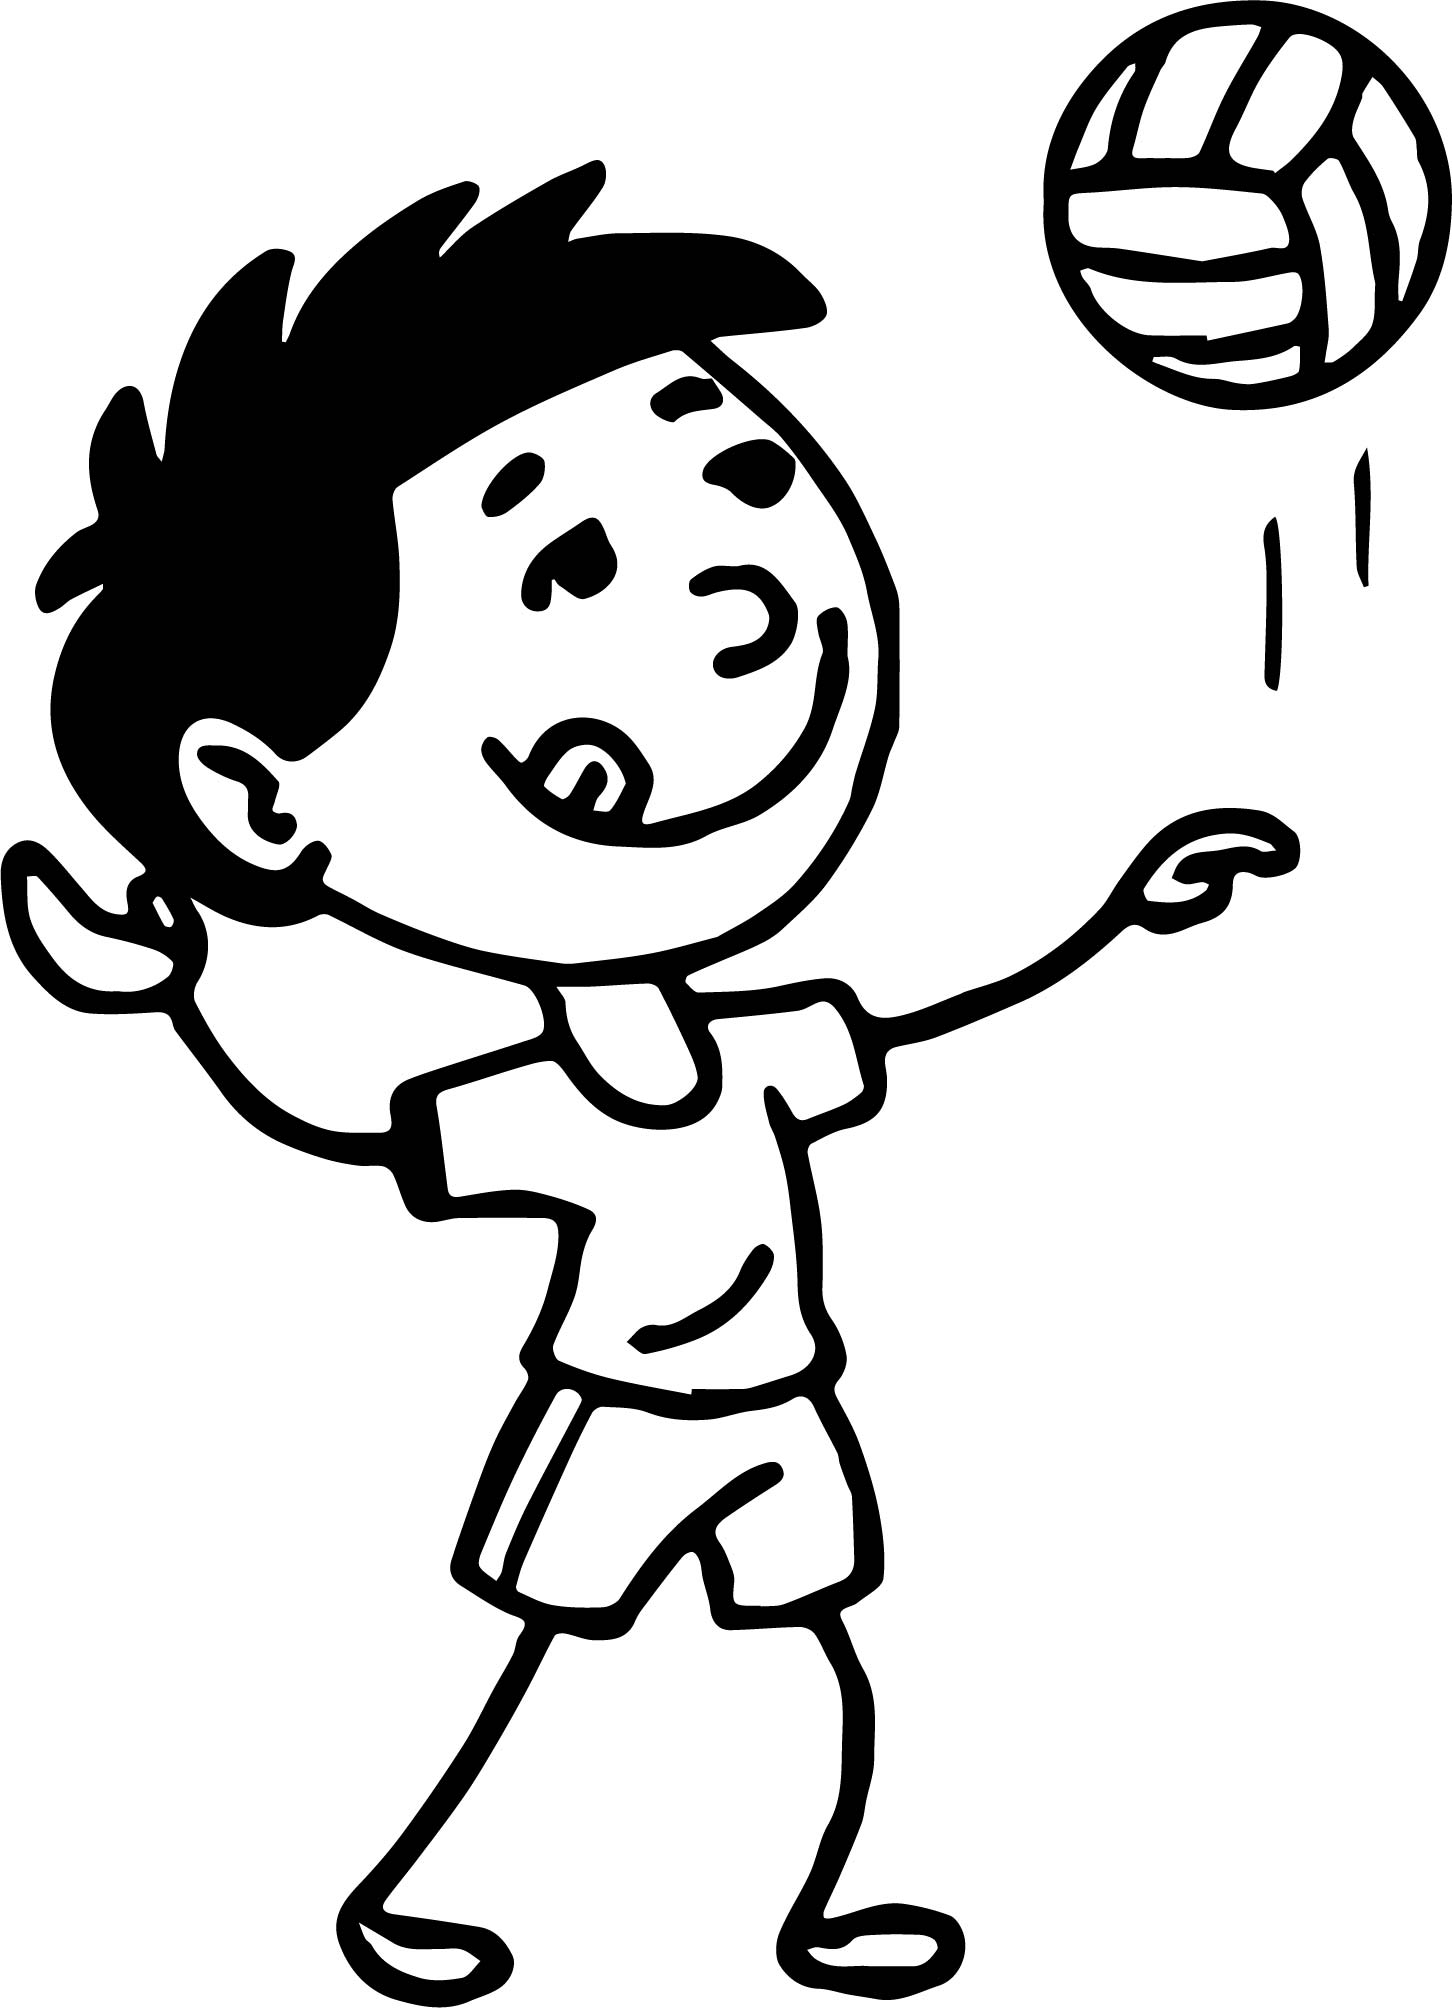 Coloring pages volleyball - Serving Volleyball On The Beach Coloring Page